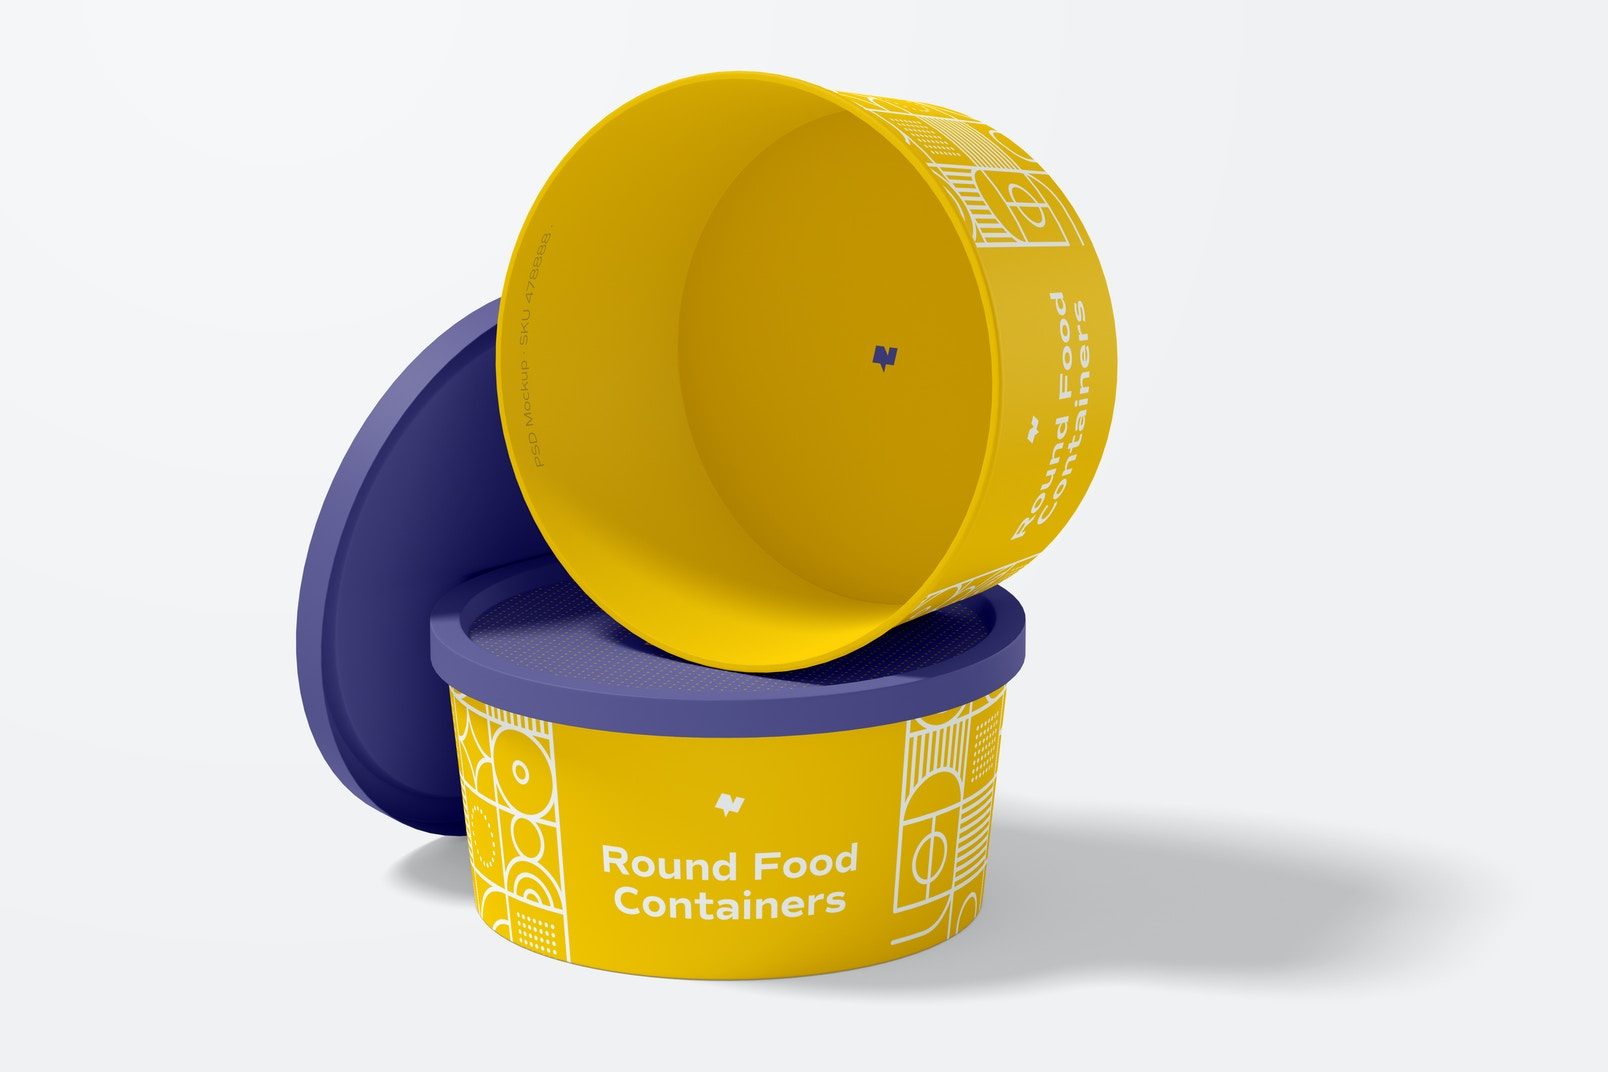 Round Plastic Food Delivery Containers Mockup, Opened and Closed